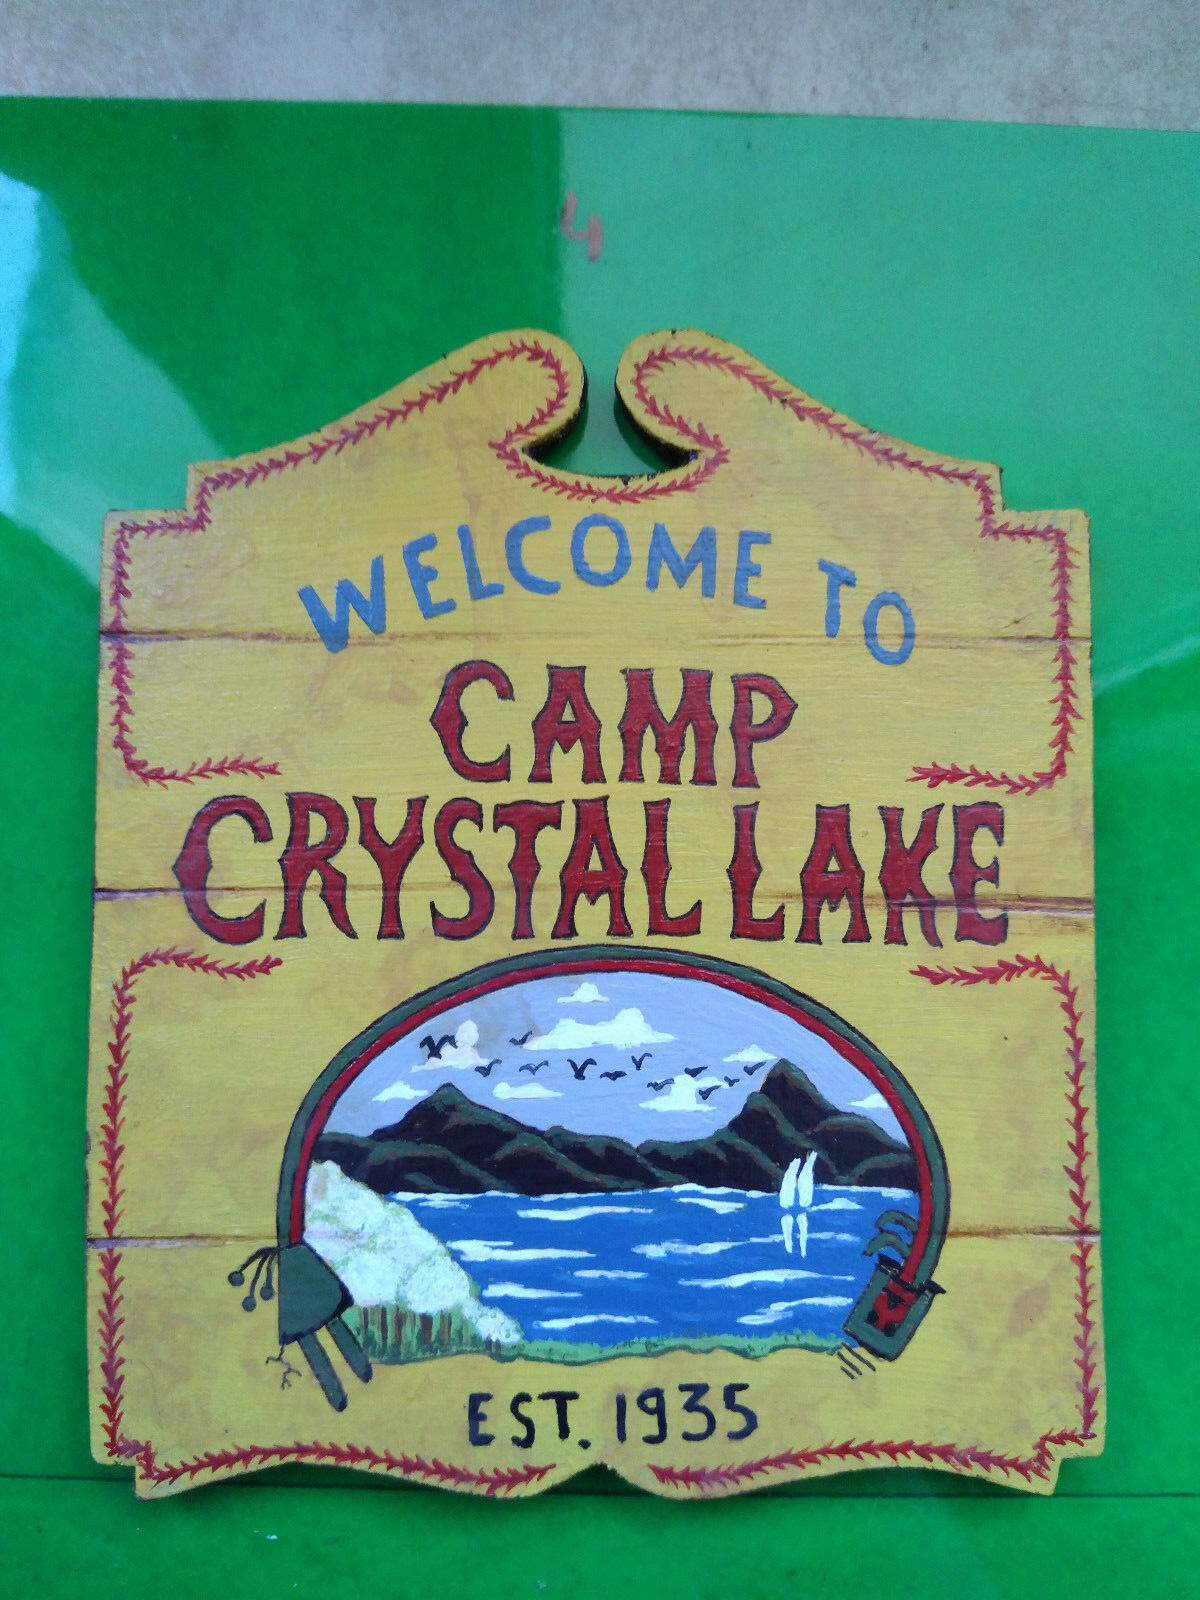 Friday the 13, camp crystal lake sign 16 , jason voorhees,sidemostrare, caliente giocattoli ,1